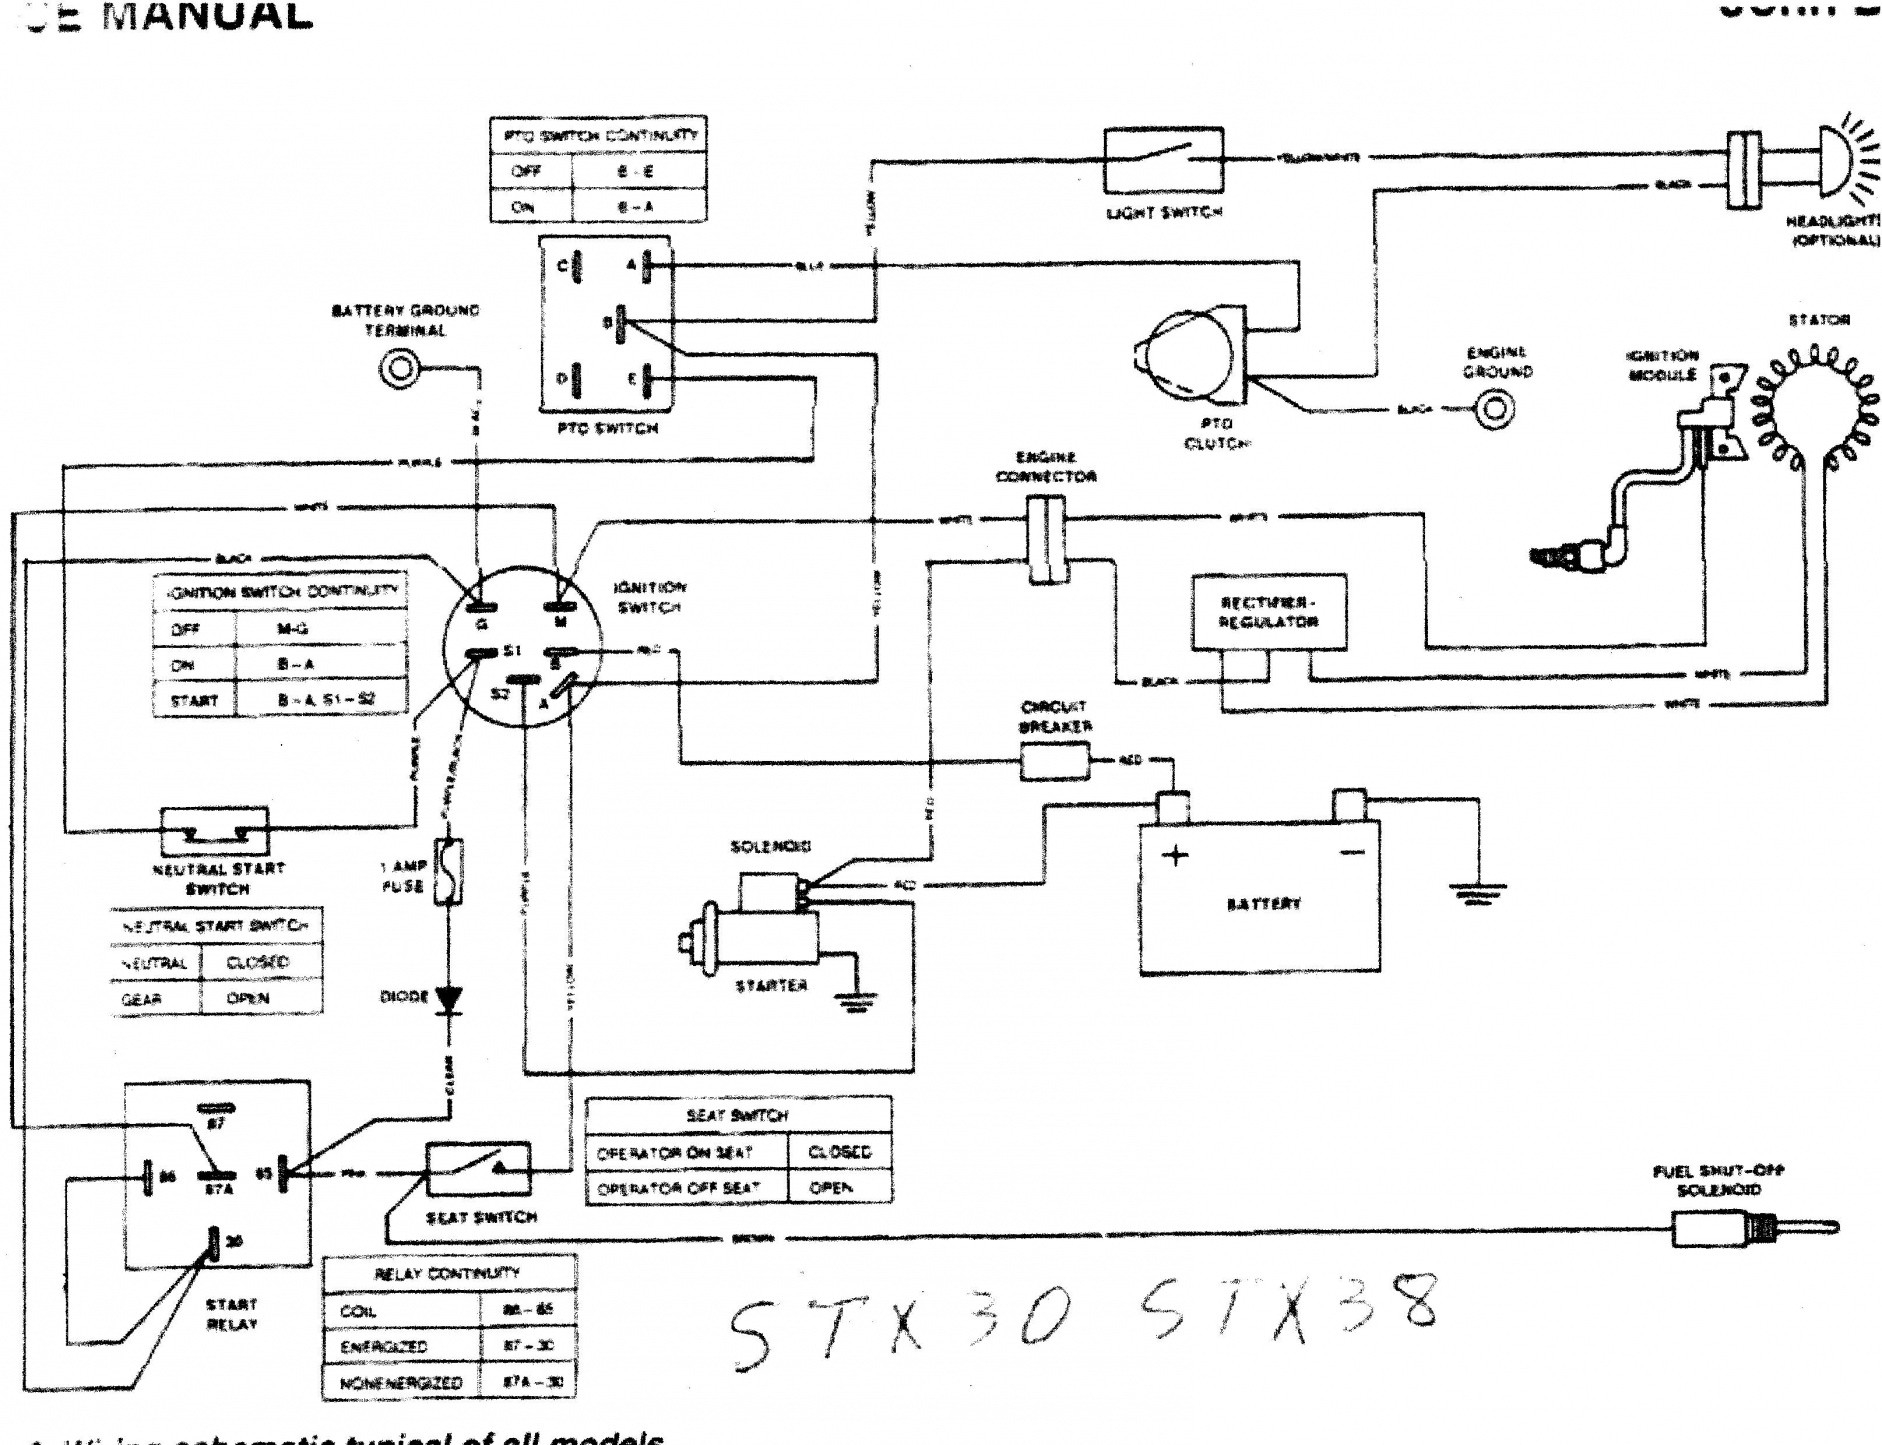 a john deere ignition wiring diagram for model no 584000 serial john deere stx38 wiring schematic | free wiring diagram john deere a wiring diagram